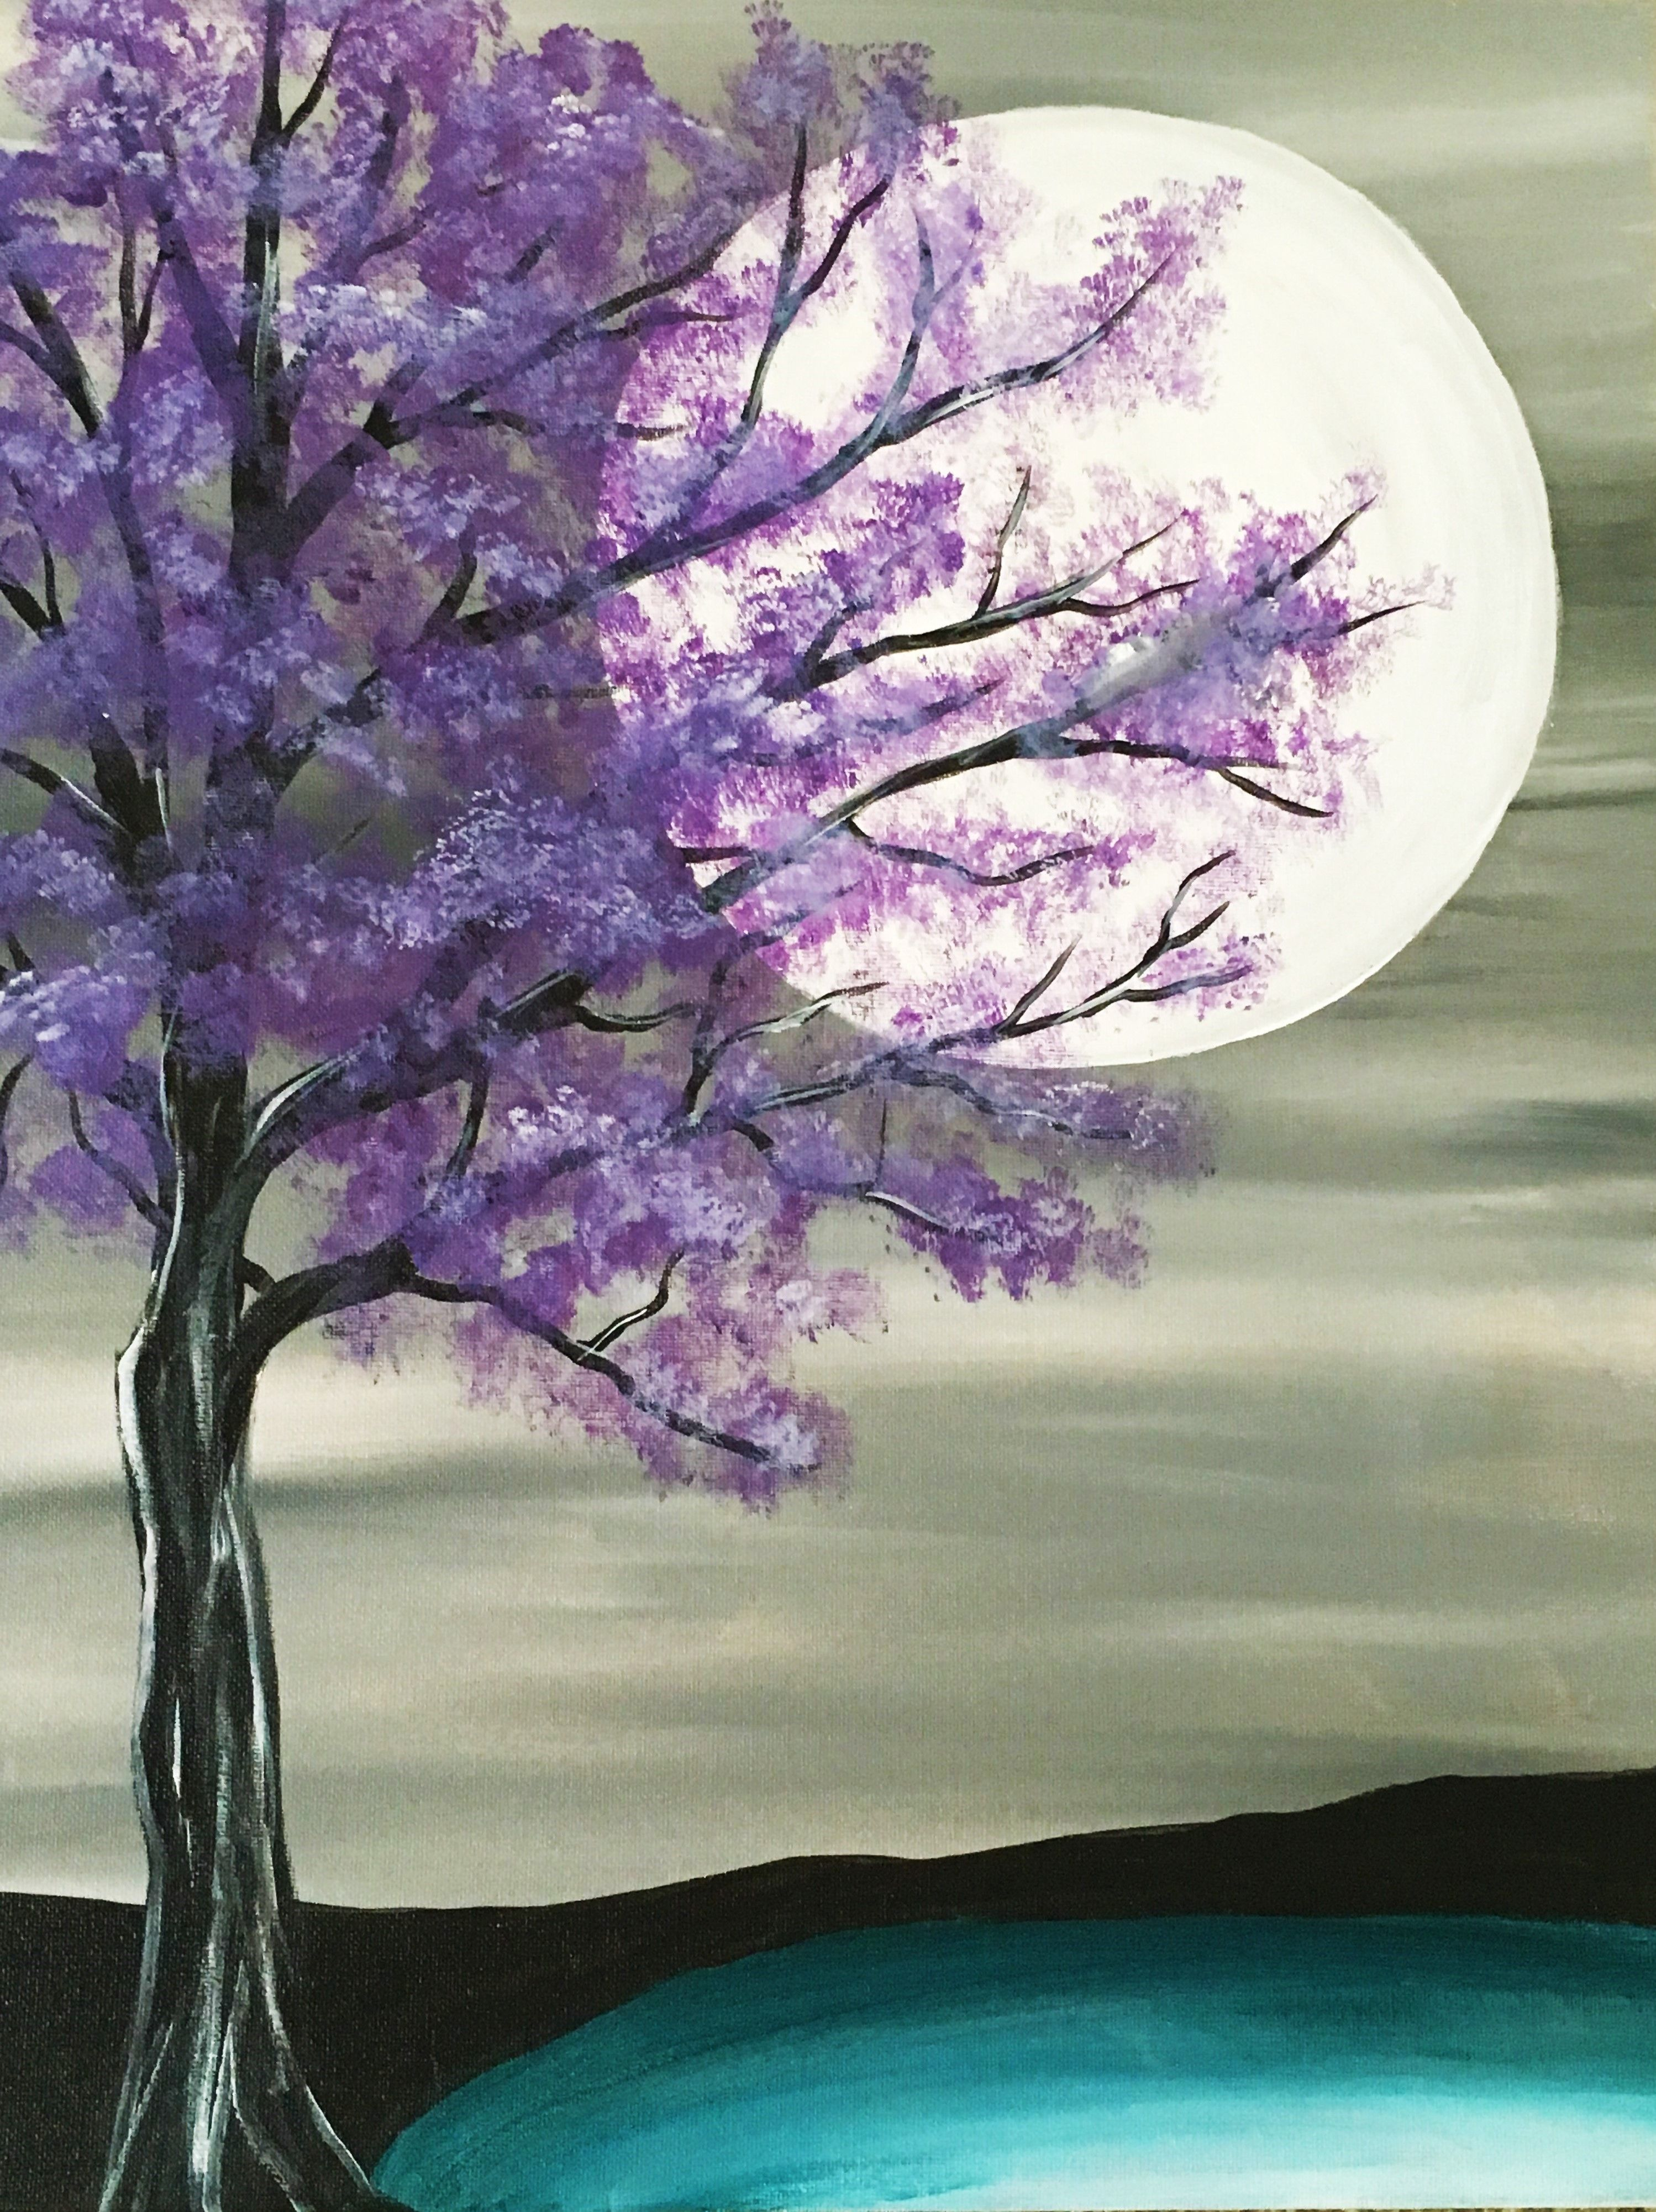 Pin by Michelle Most on Art-trees | Easy canvas painting, Simple acrylic paintings, Art painting